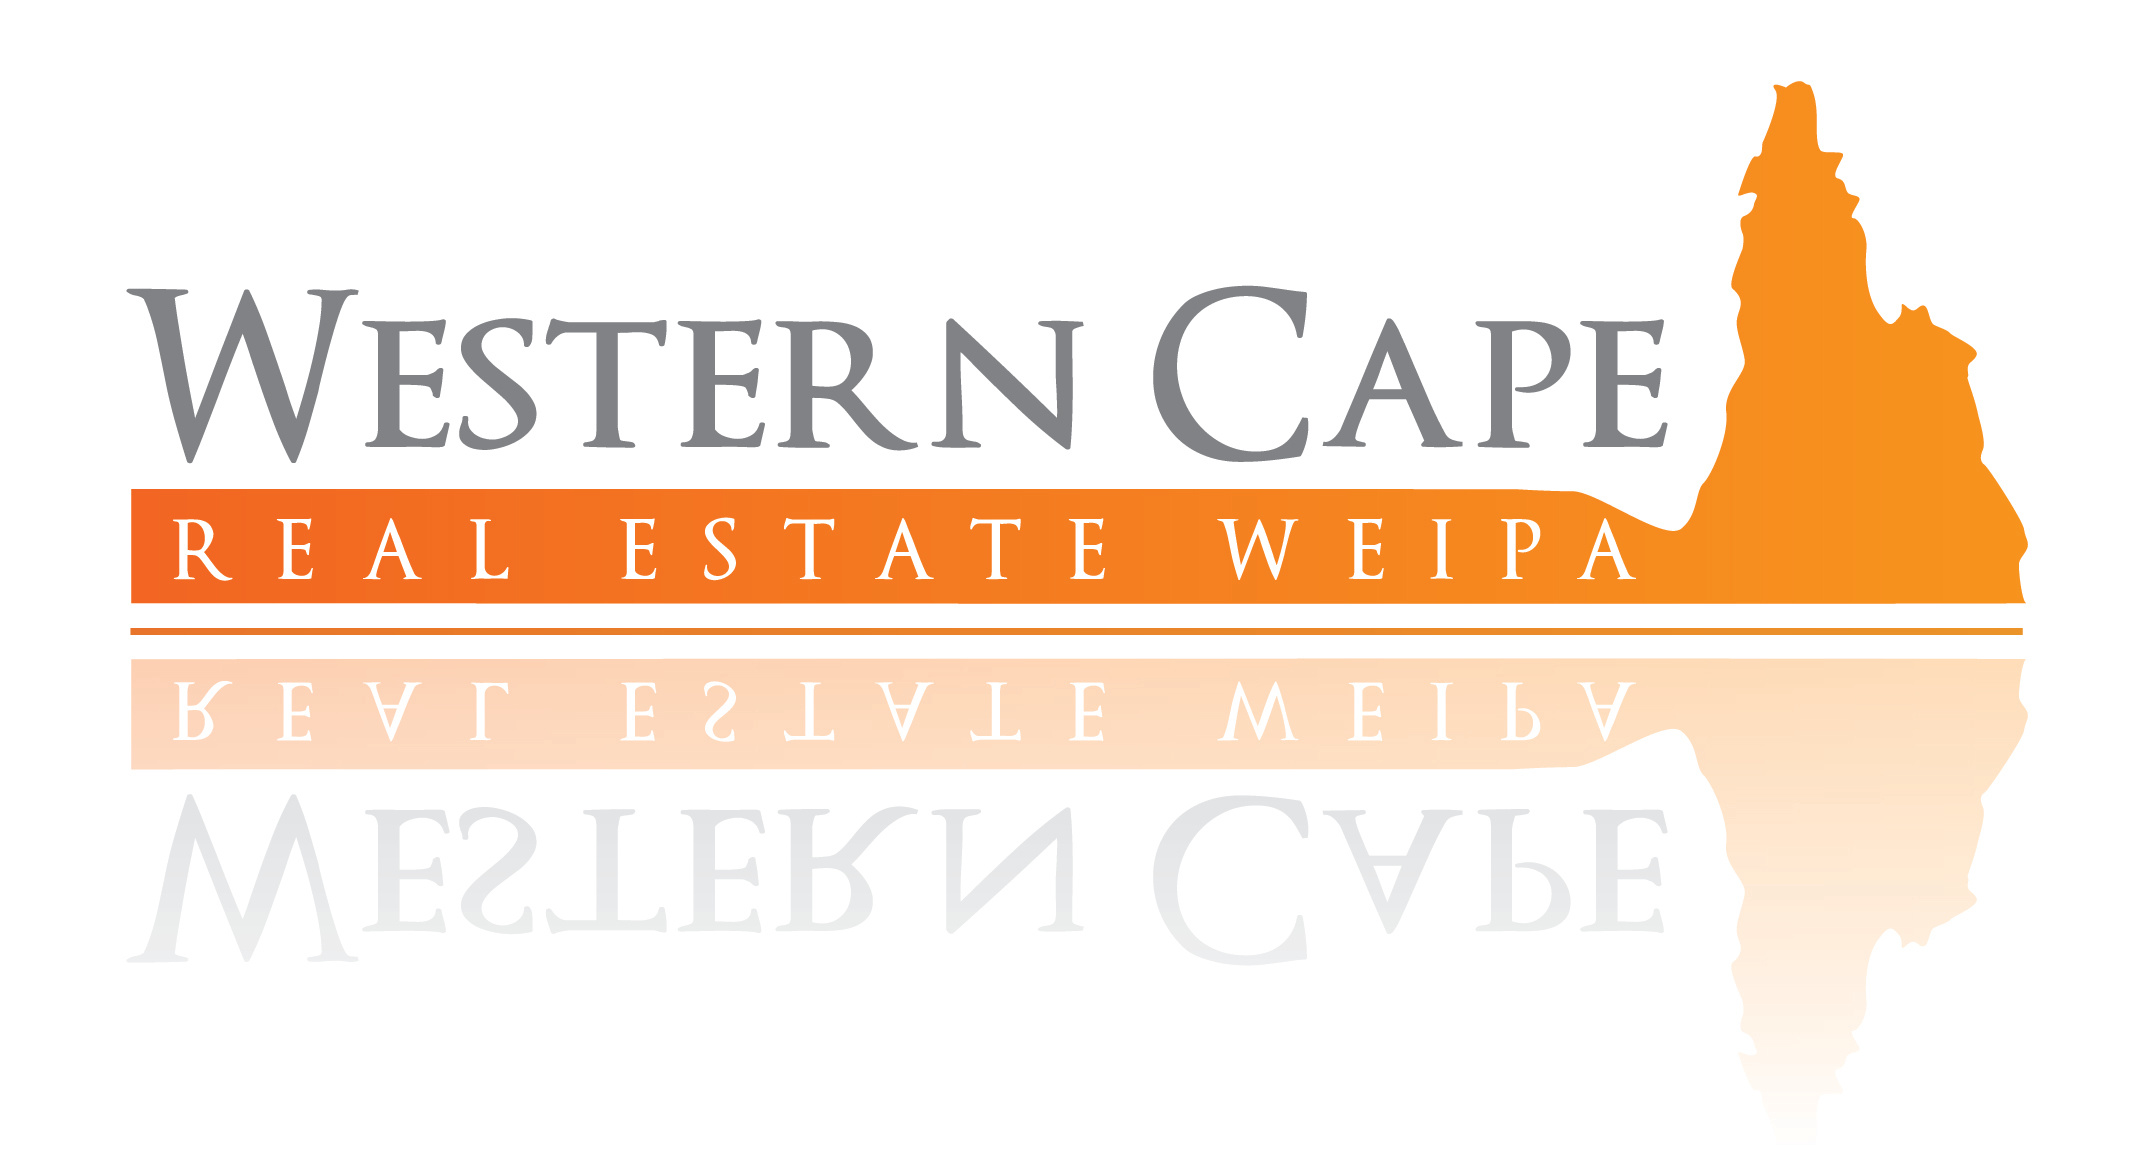 WESTERN_CAPE_REAL_ESTATE_LOGO_CMYK